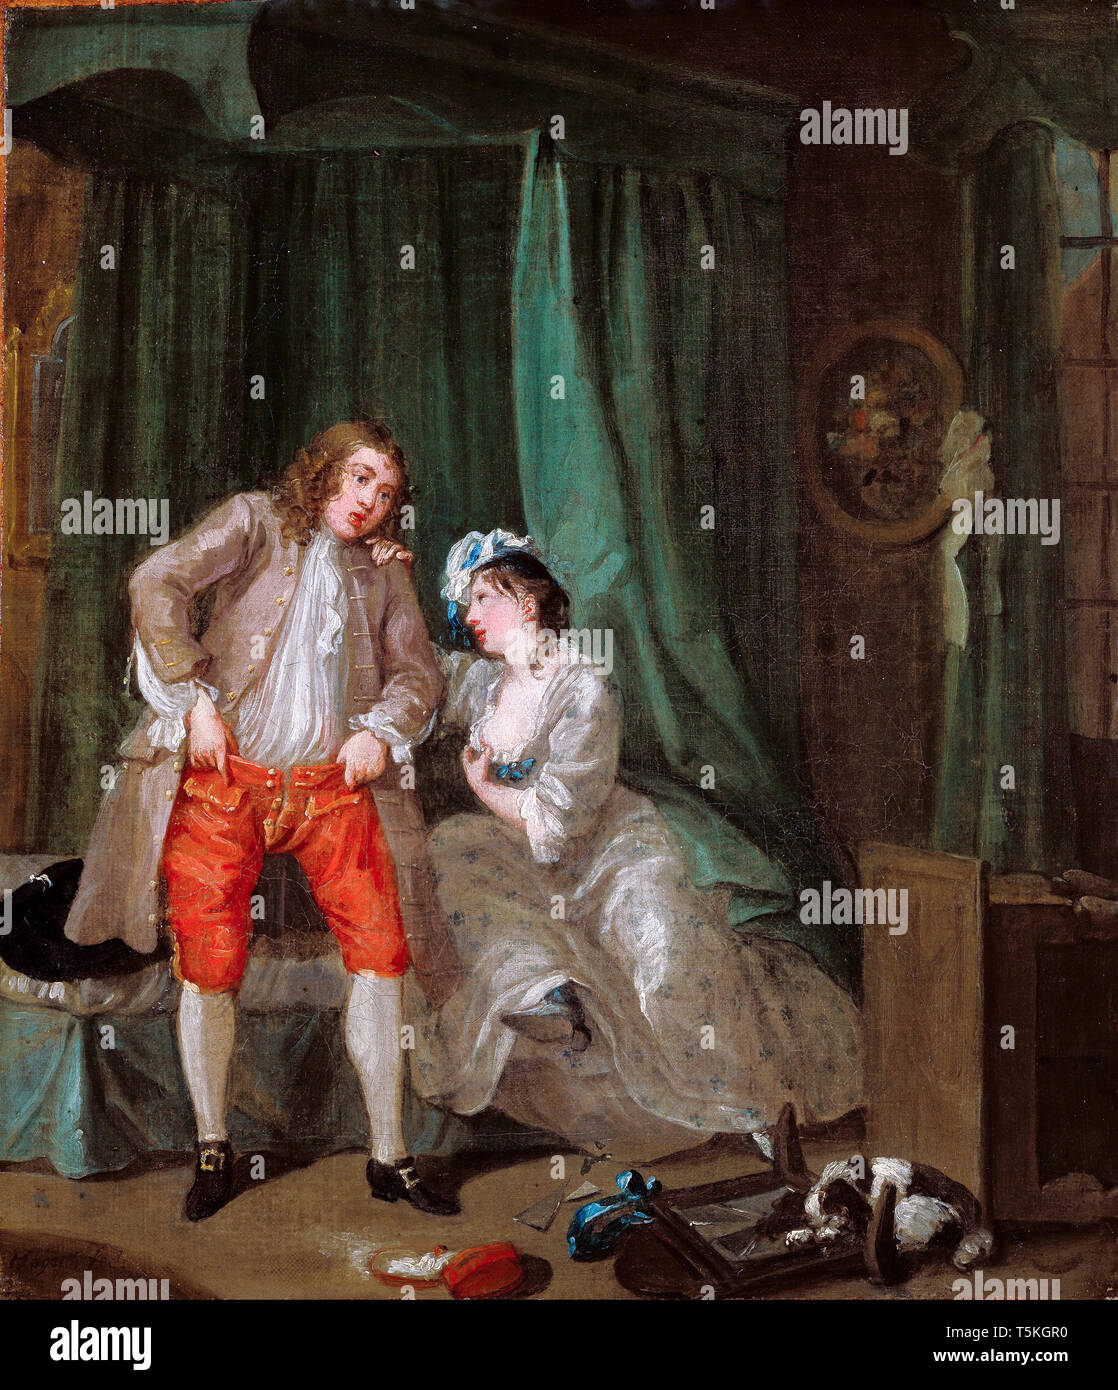 William Hogarth, After, painting, c. 1730 Stock Photo